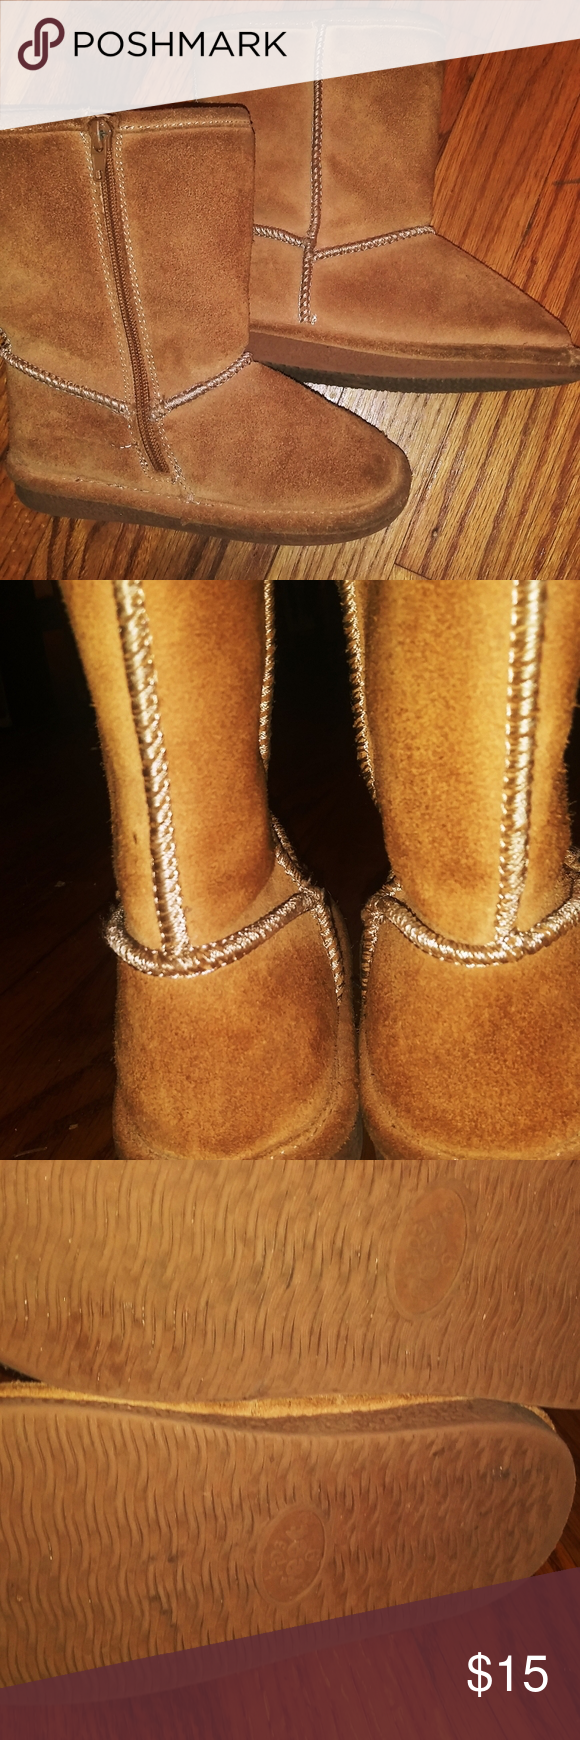 TODDLERS LITTLE GIRLS BROWN SUEDE BOOTS SIZE 11